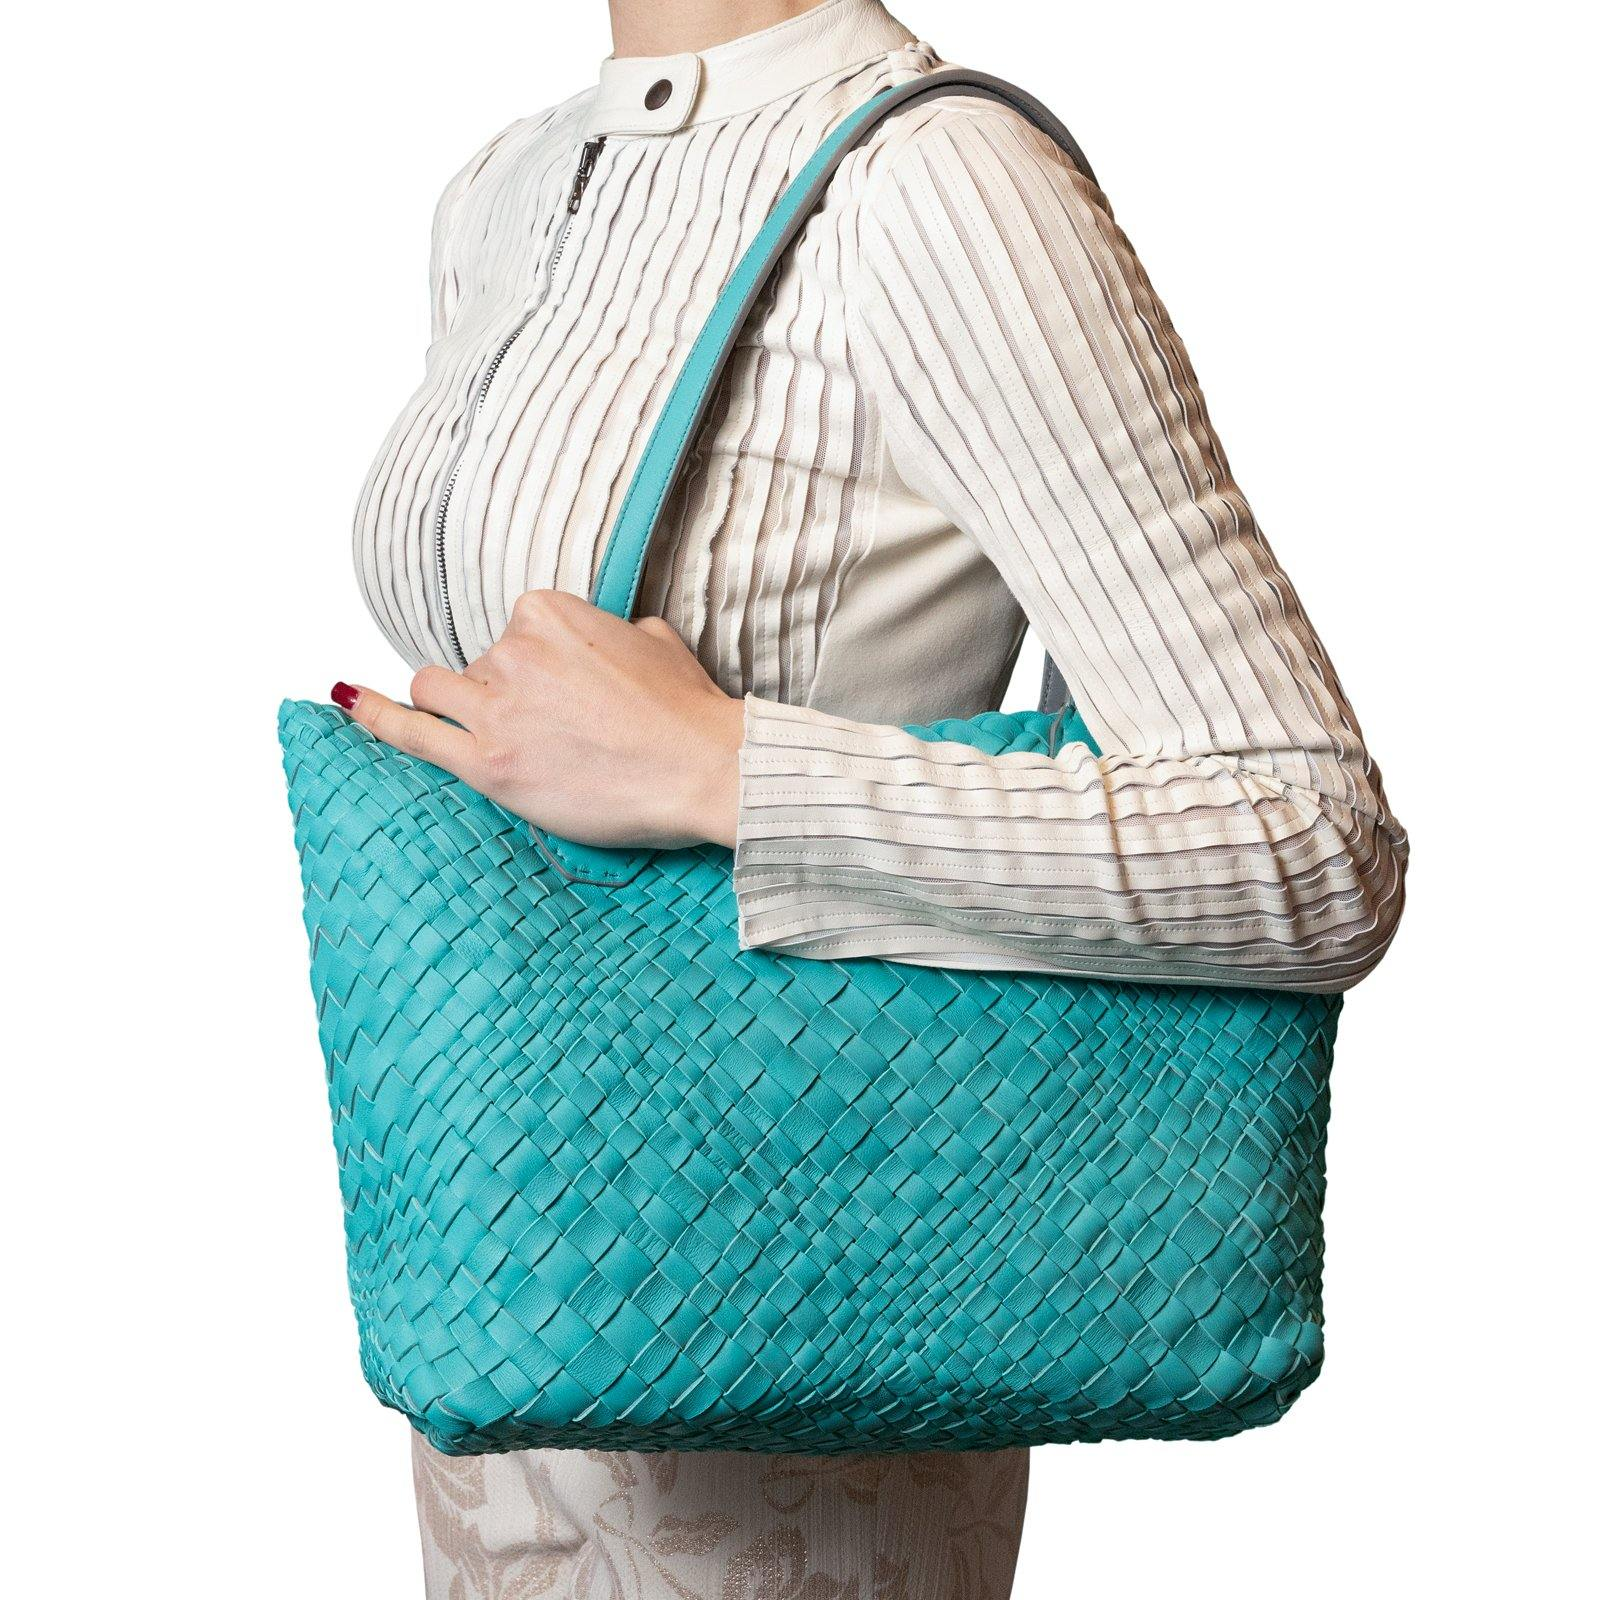 Women Leather Intreccio Optical Leather Bag in Marine and Grey - Jennifer Tattanelli